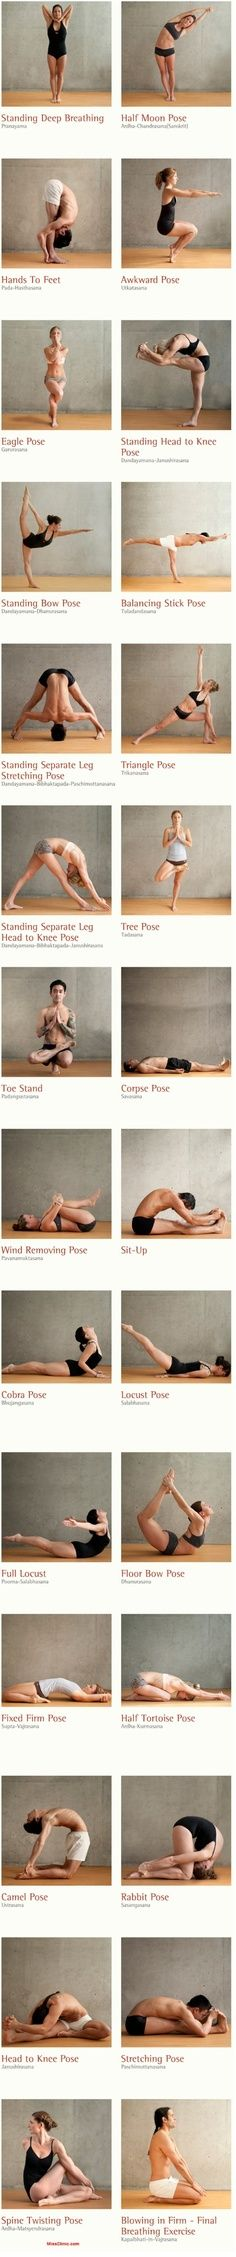 26 Healthy Yoga Postures. | best from pinterest